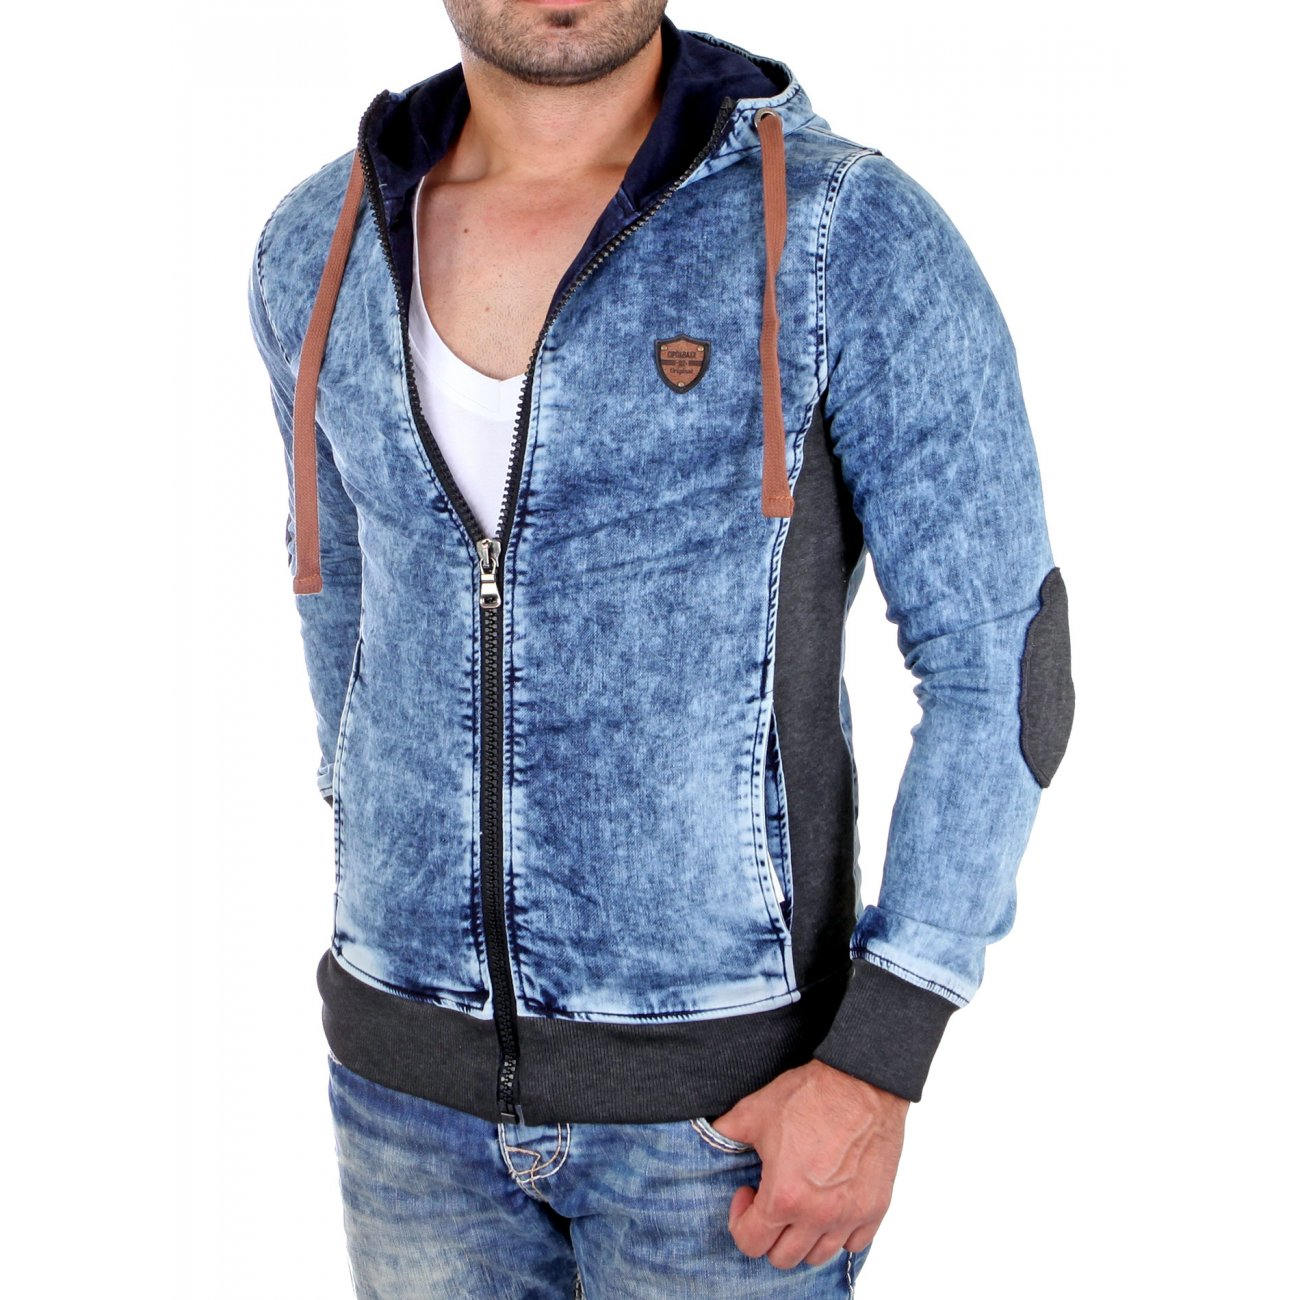 cipo baxx jeansjacke herren 2in1 look jacke cj 140 blau. Black Bedroom Furniture Sets. Home Design Ideas